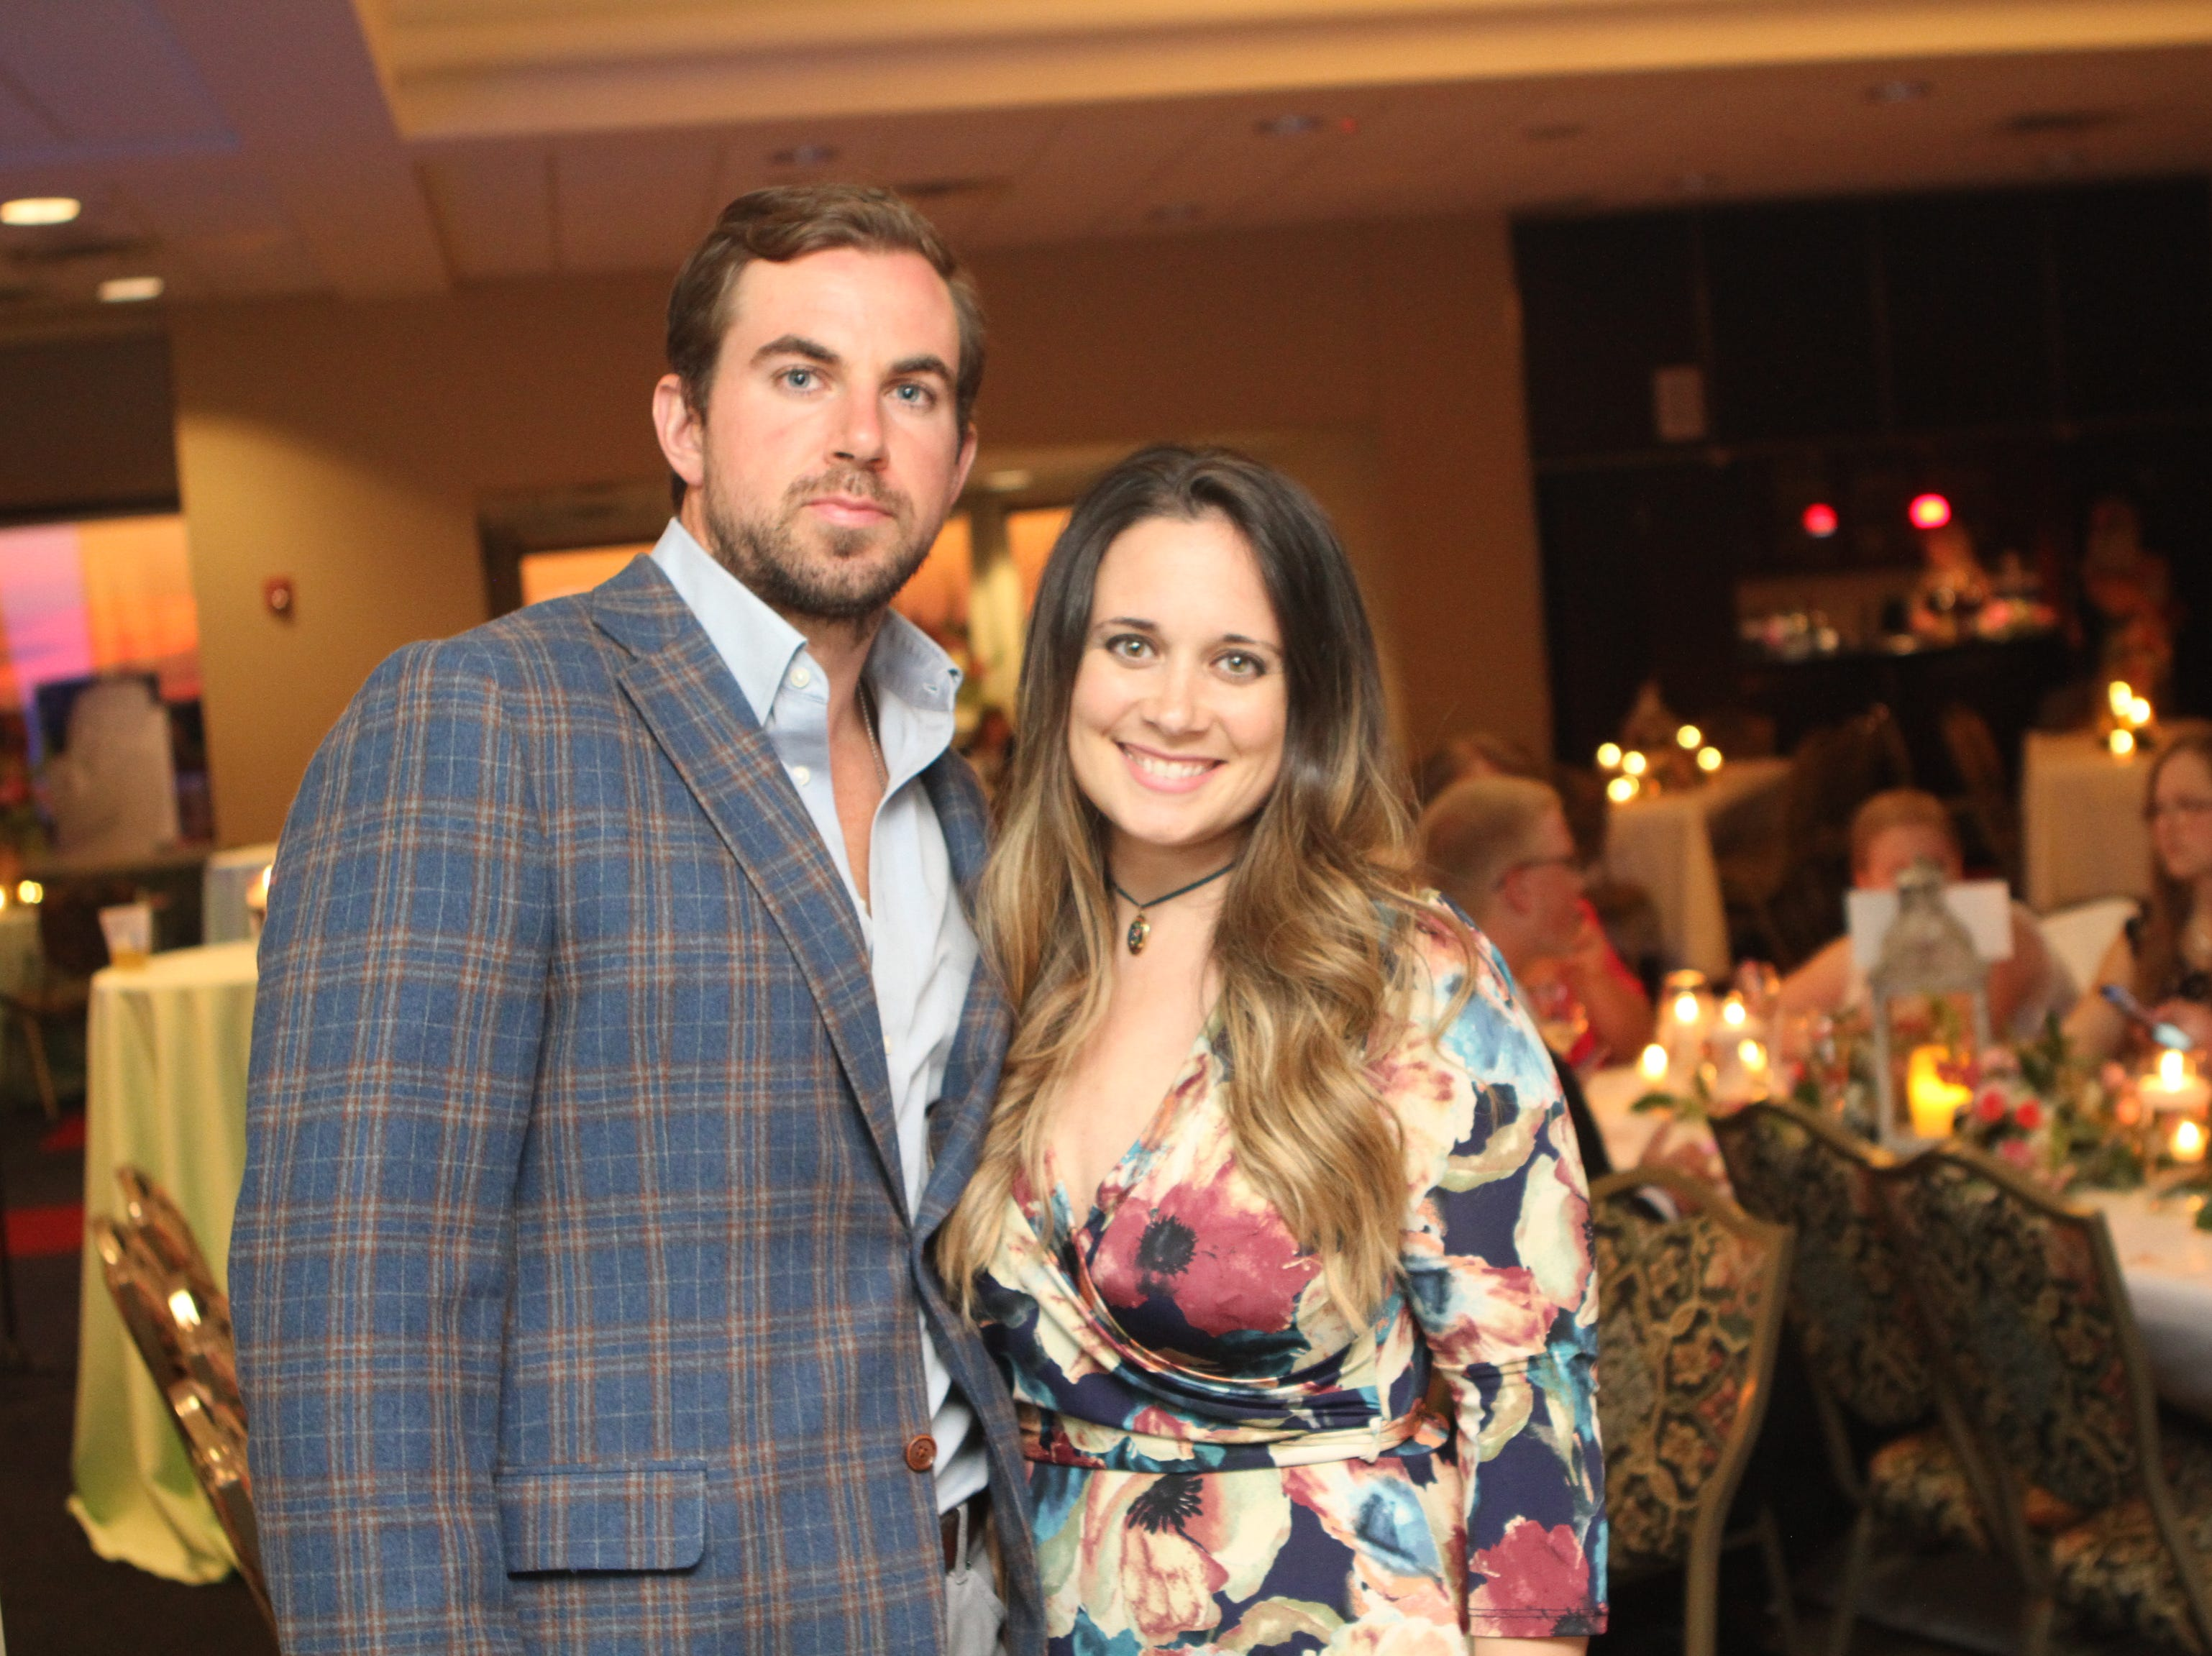 The Dawn Stanfill Foundation hosted its 10th Annual Dancing Til Dawn to benefit Middle Tennessee children battling pediatric cancer on Saturday, Sept. 29, 2018.